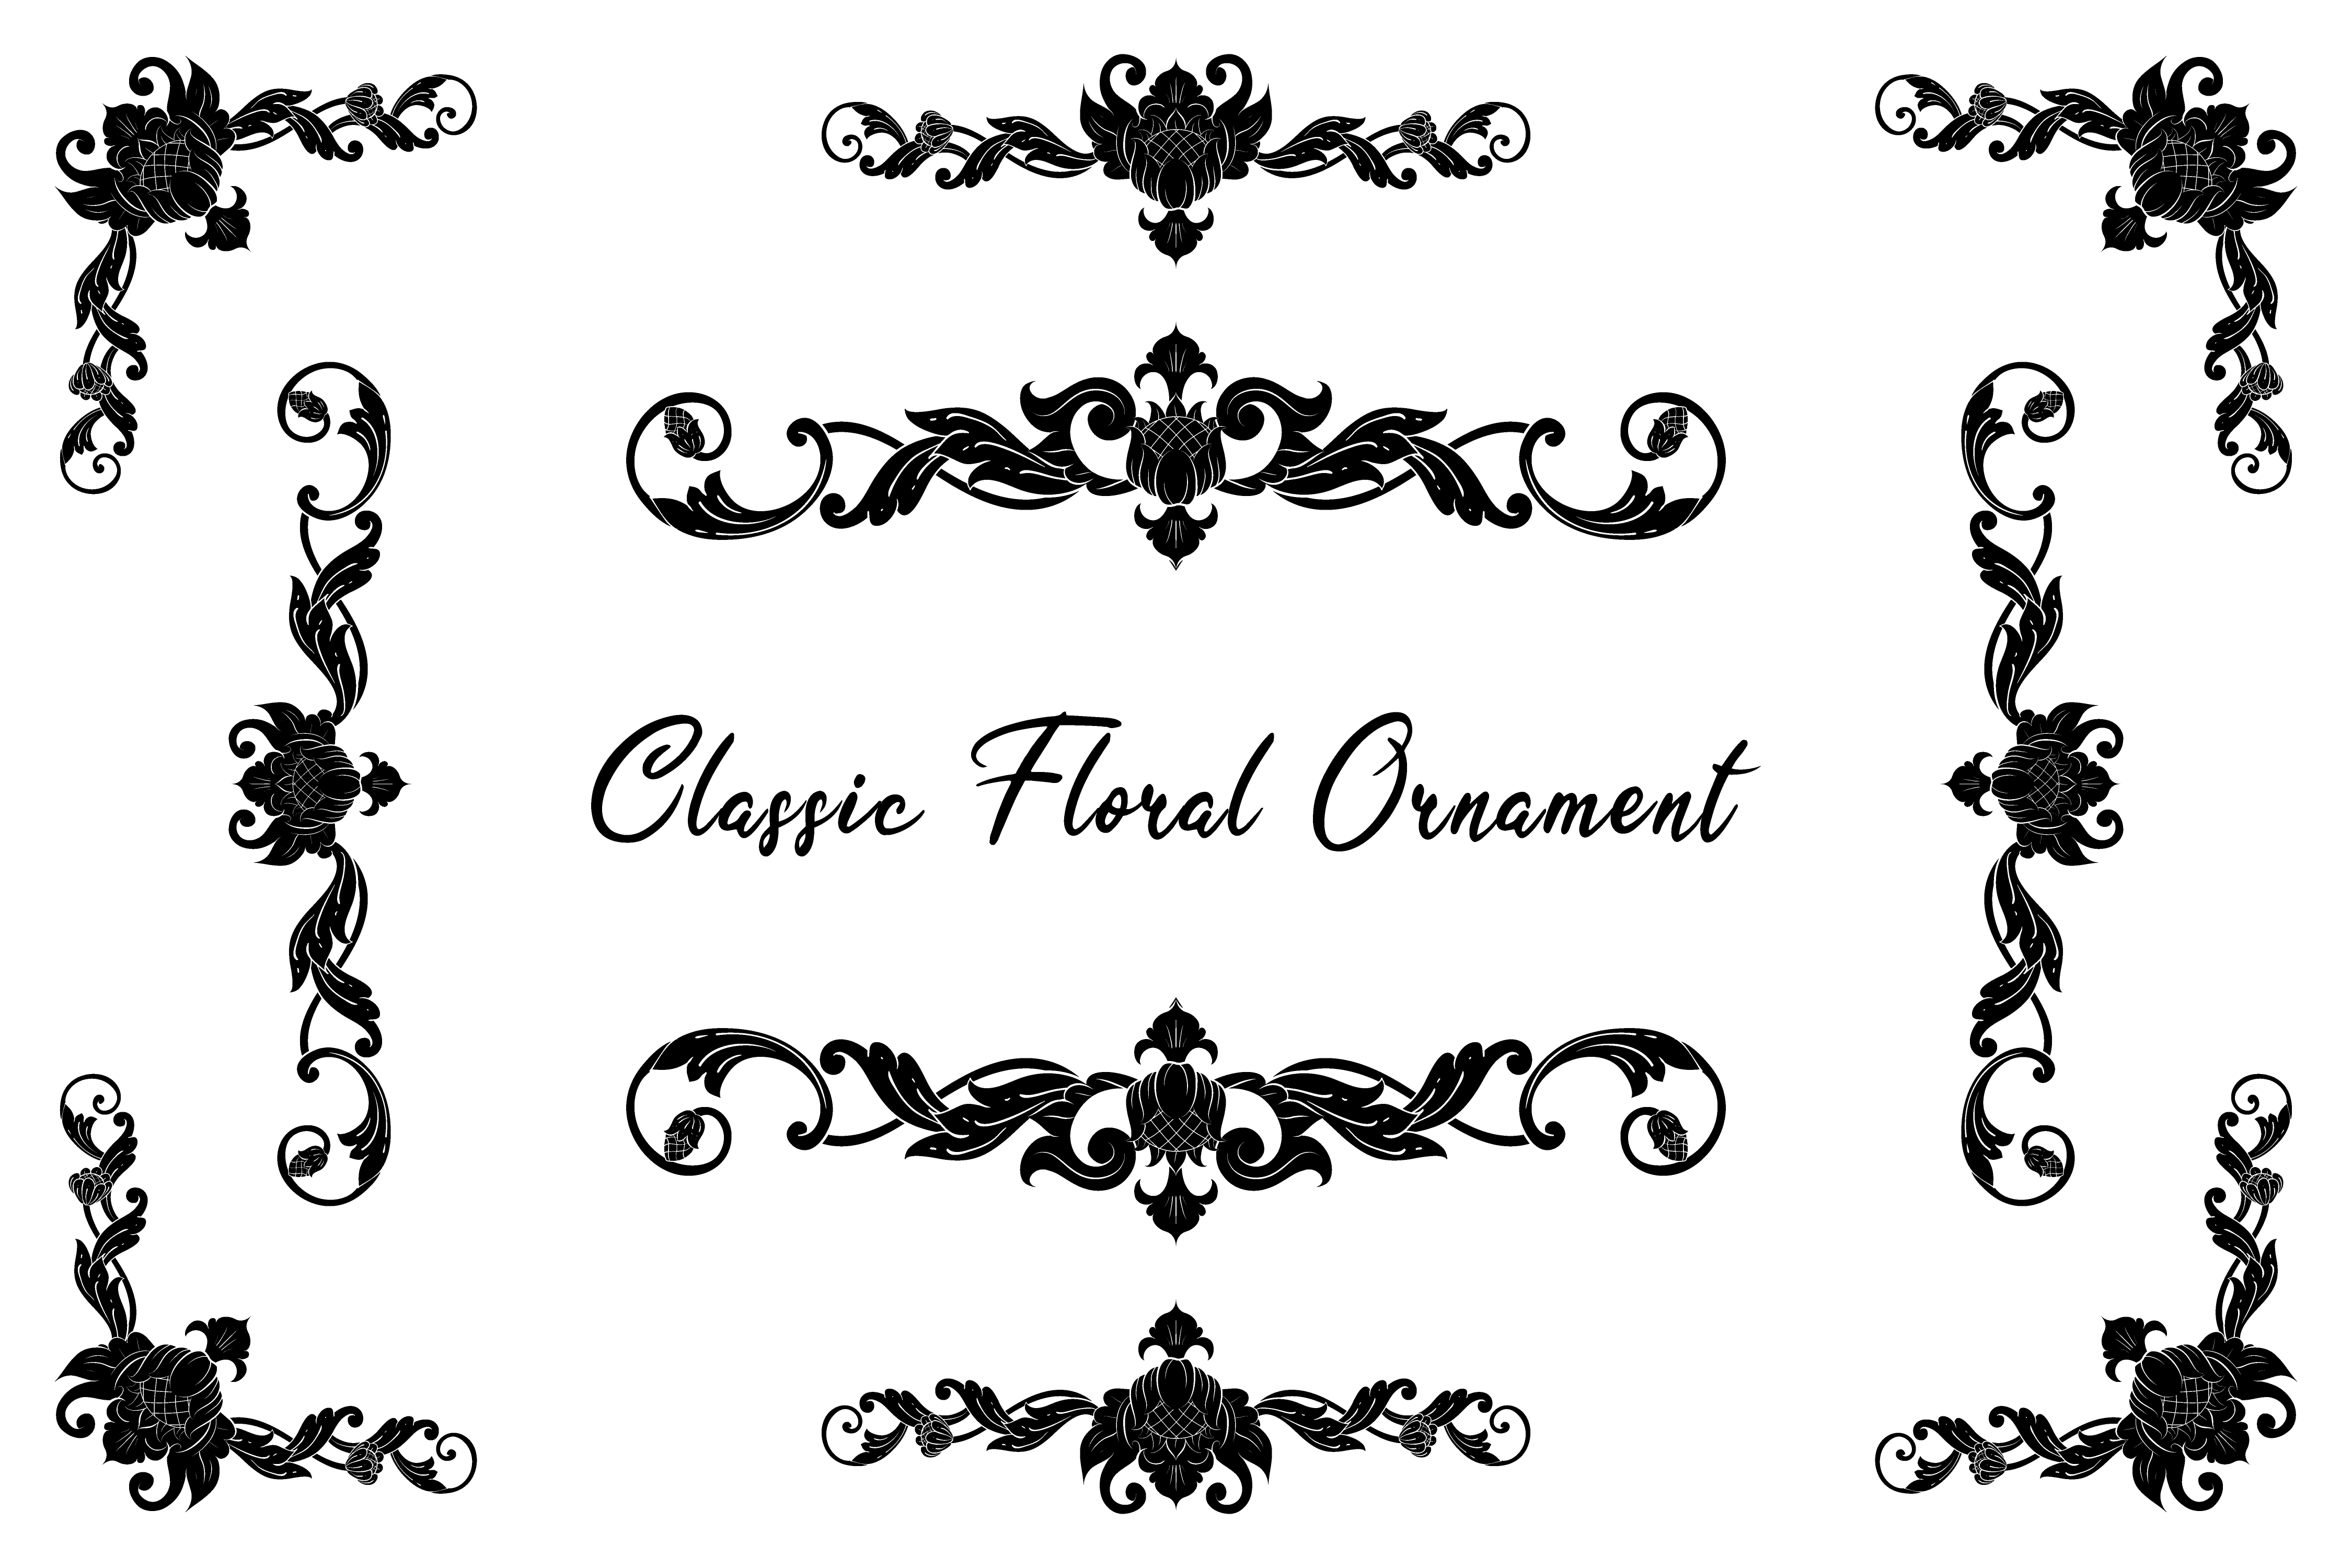 Download Free Classic Vintage Wedding Vector Ornament Graphic By Anomali Bisu for Cricut Explore, Silhouette and other cutting machines.